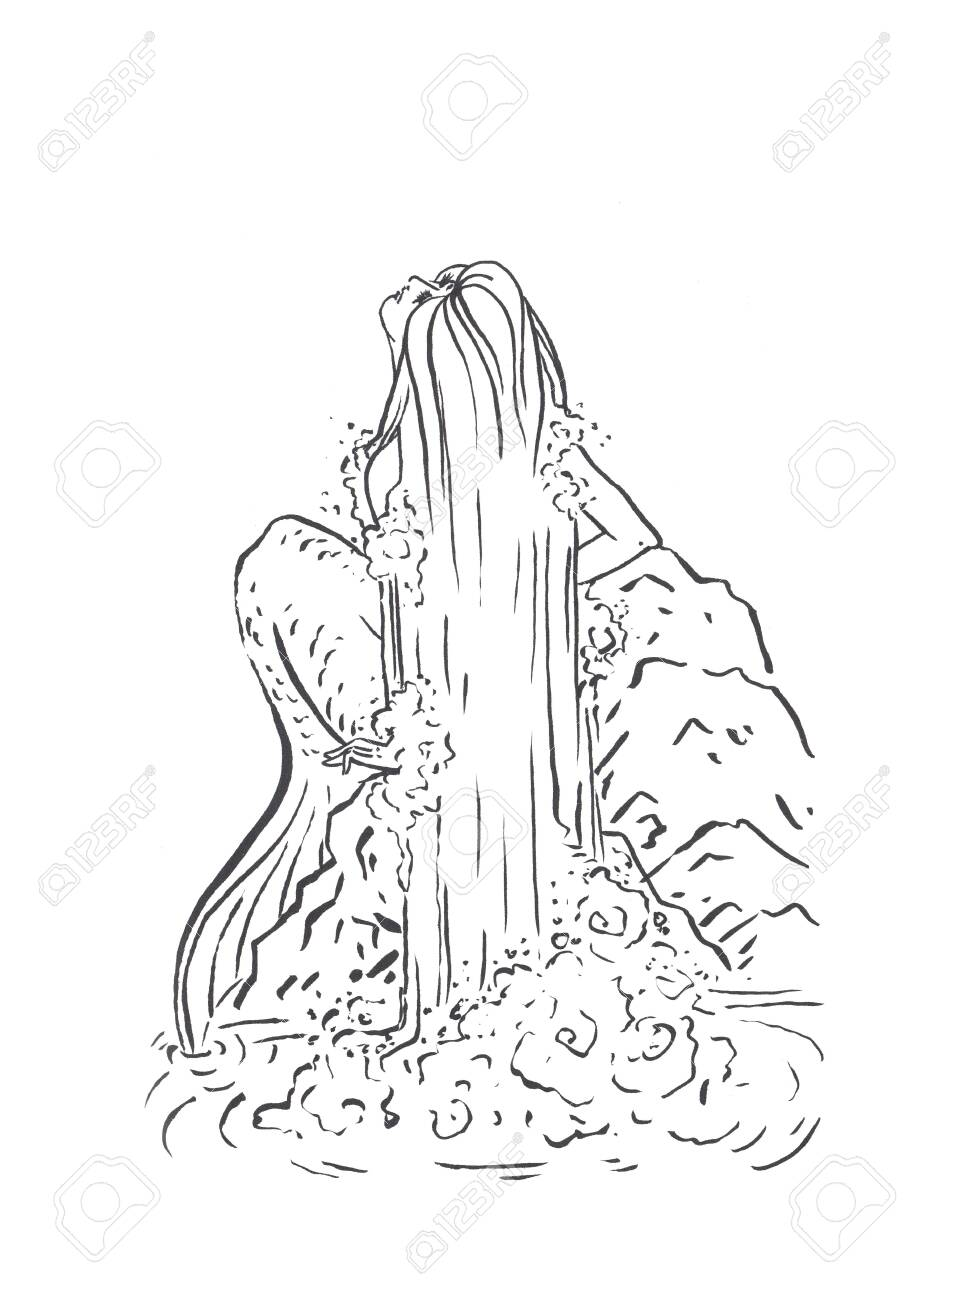 11 Pics Of Princess Coloring Pages Mermaids Fairies - Fairy ... | 1300x958